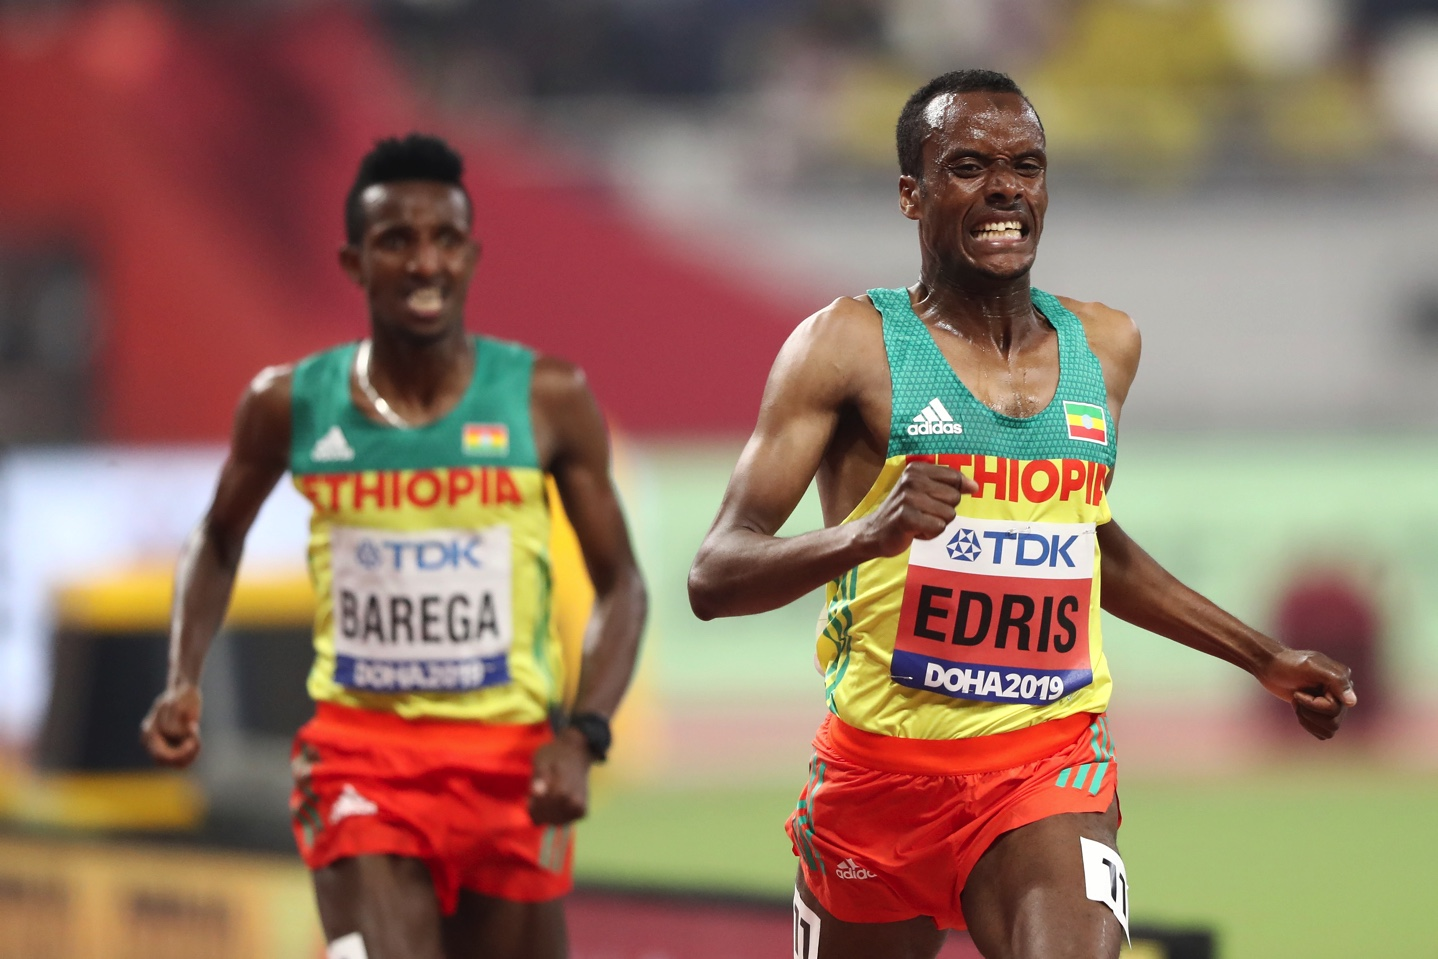 17th IAAF World Athletics Championships Doha 2019 - Day Four - Runner's Tribe